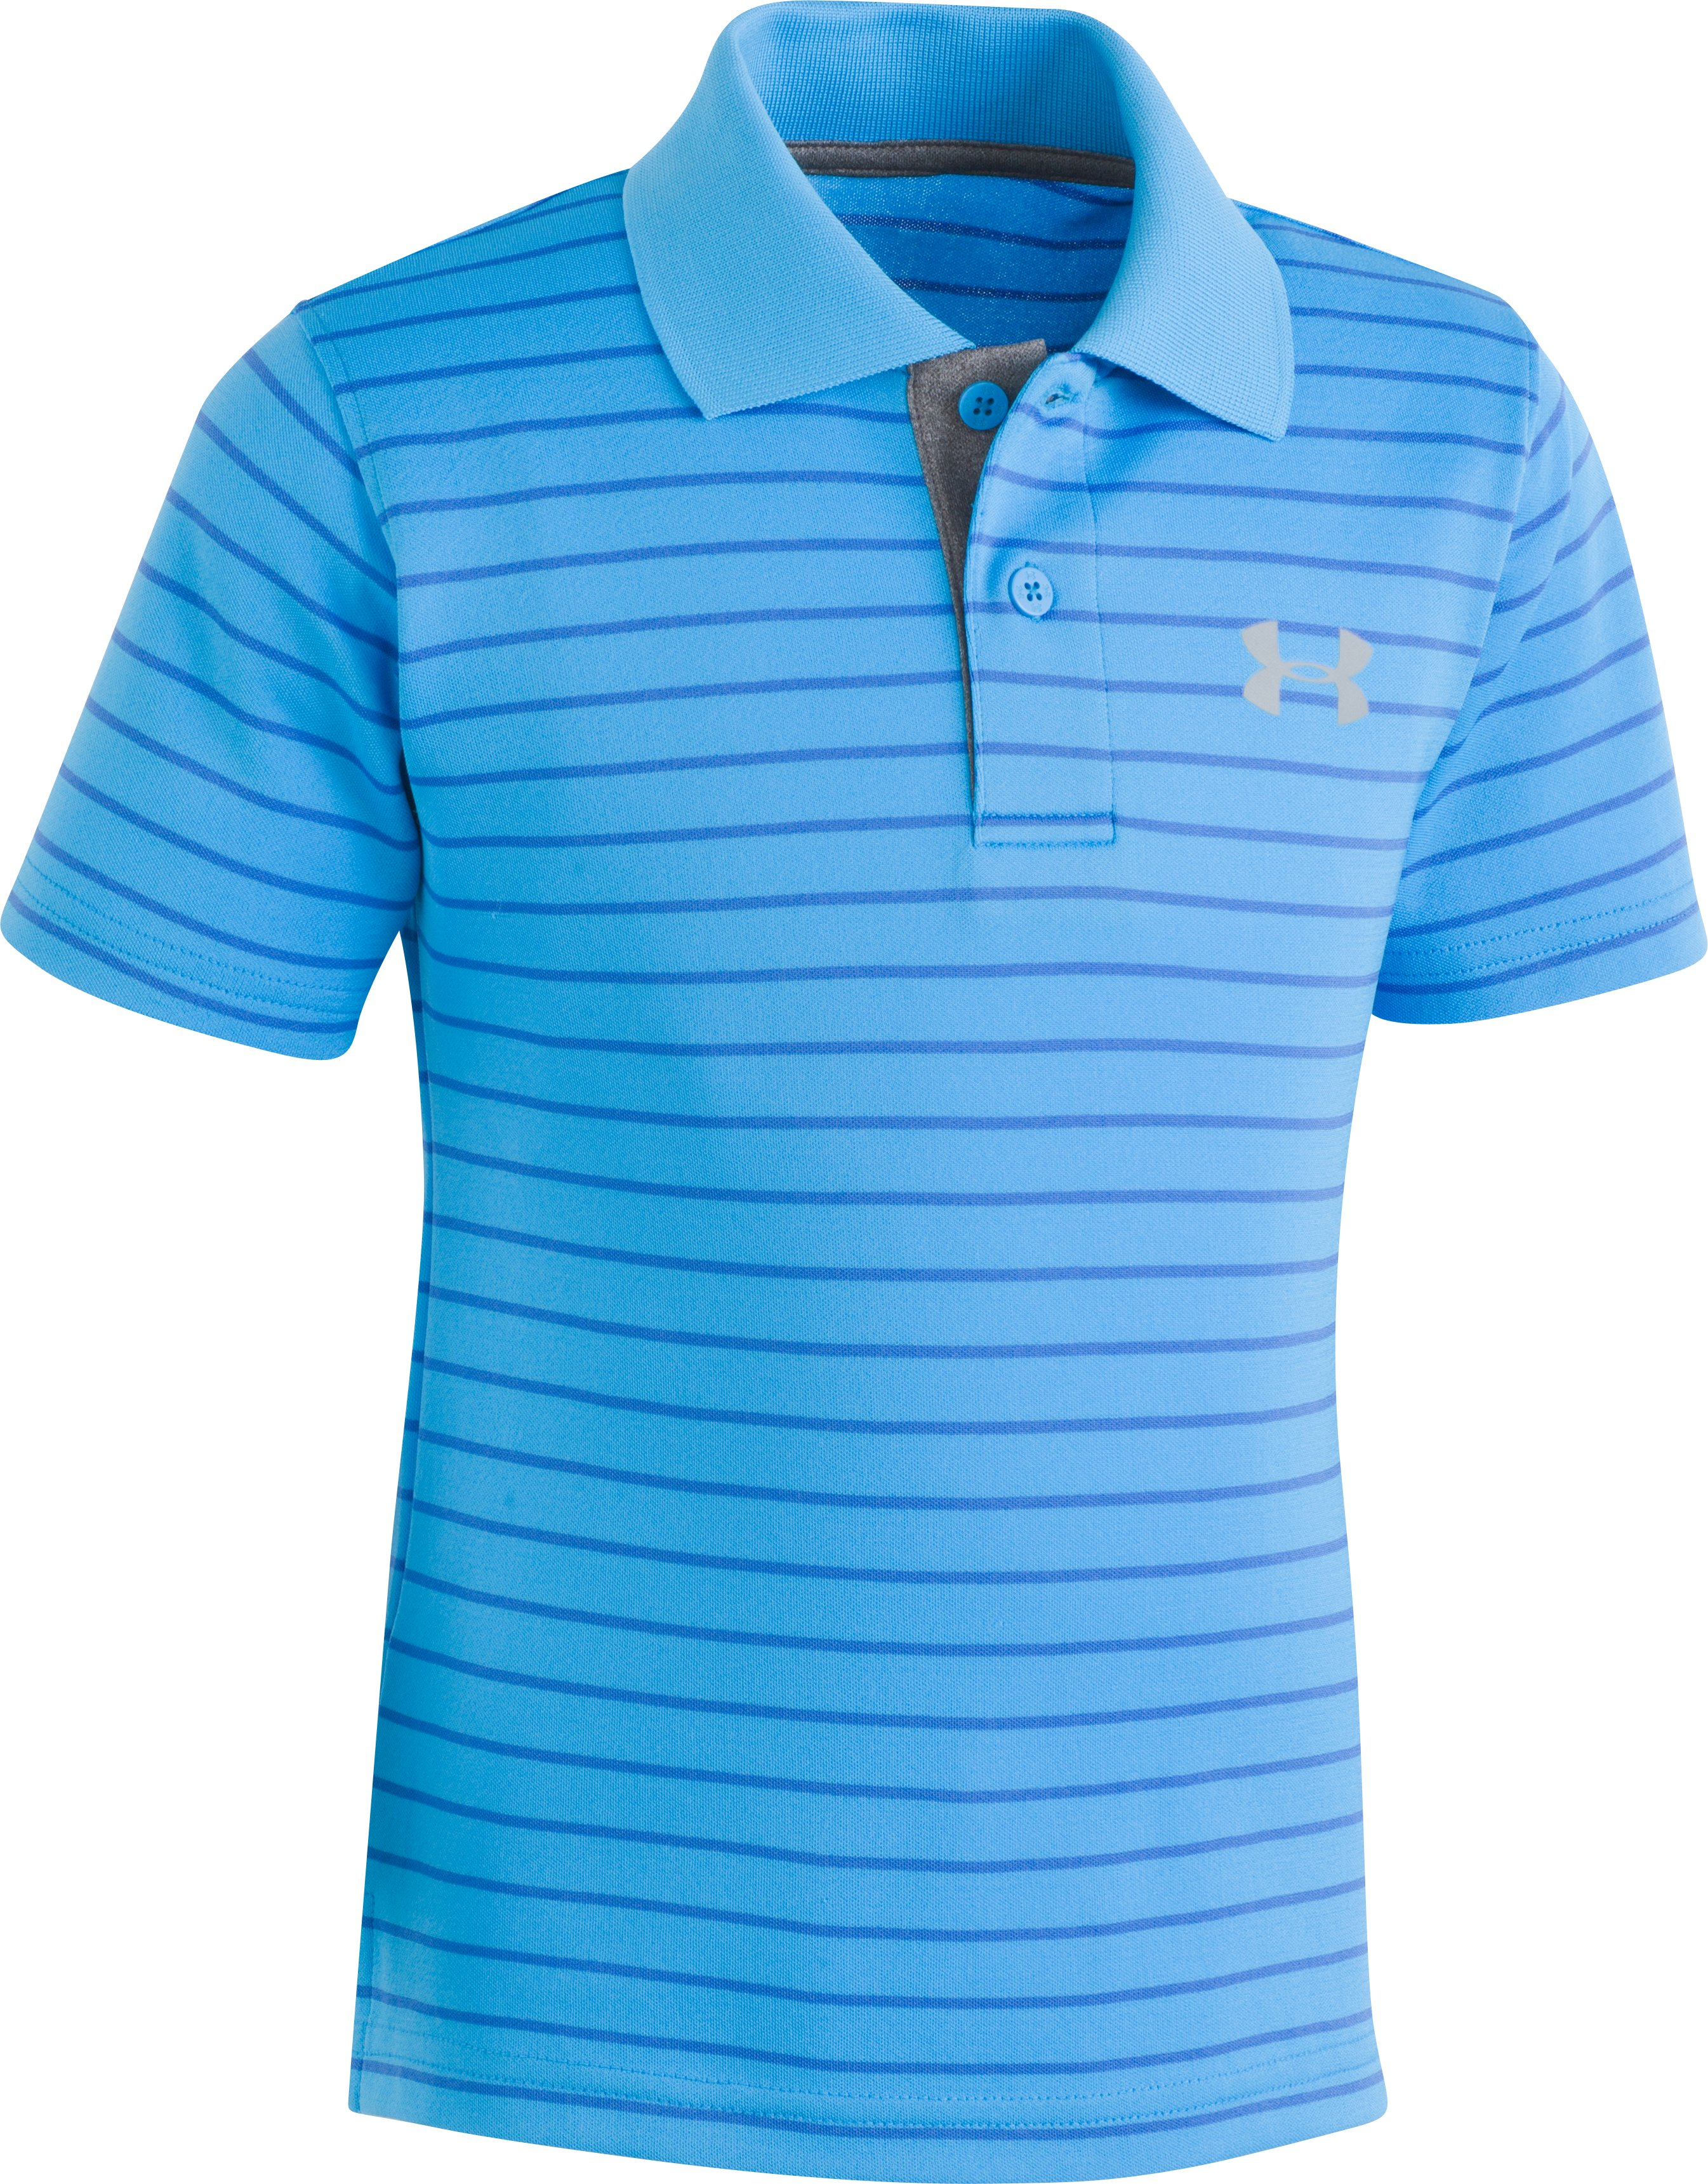 Playoff Stripe Polo 12-24M, Canoe Blue, zoomed